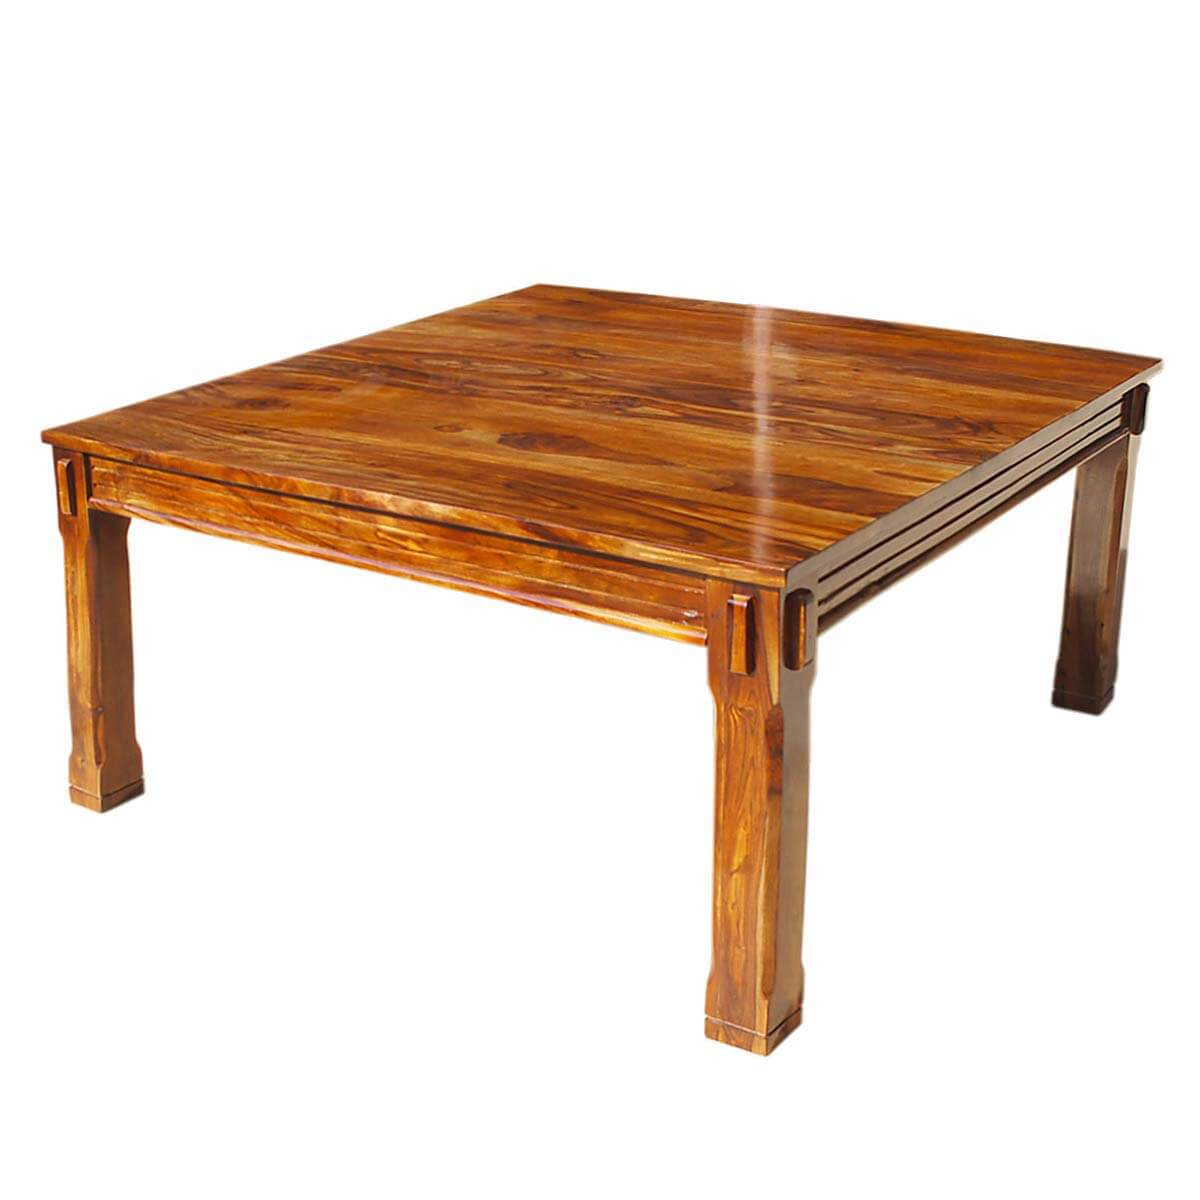 Home Best Sellers Rustic Solid Wood 64 Square Dining Table